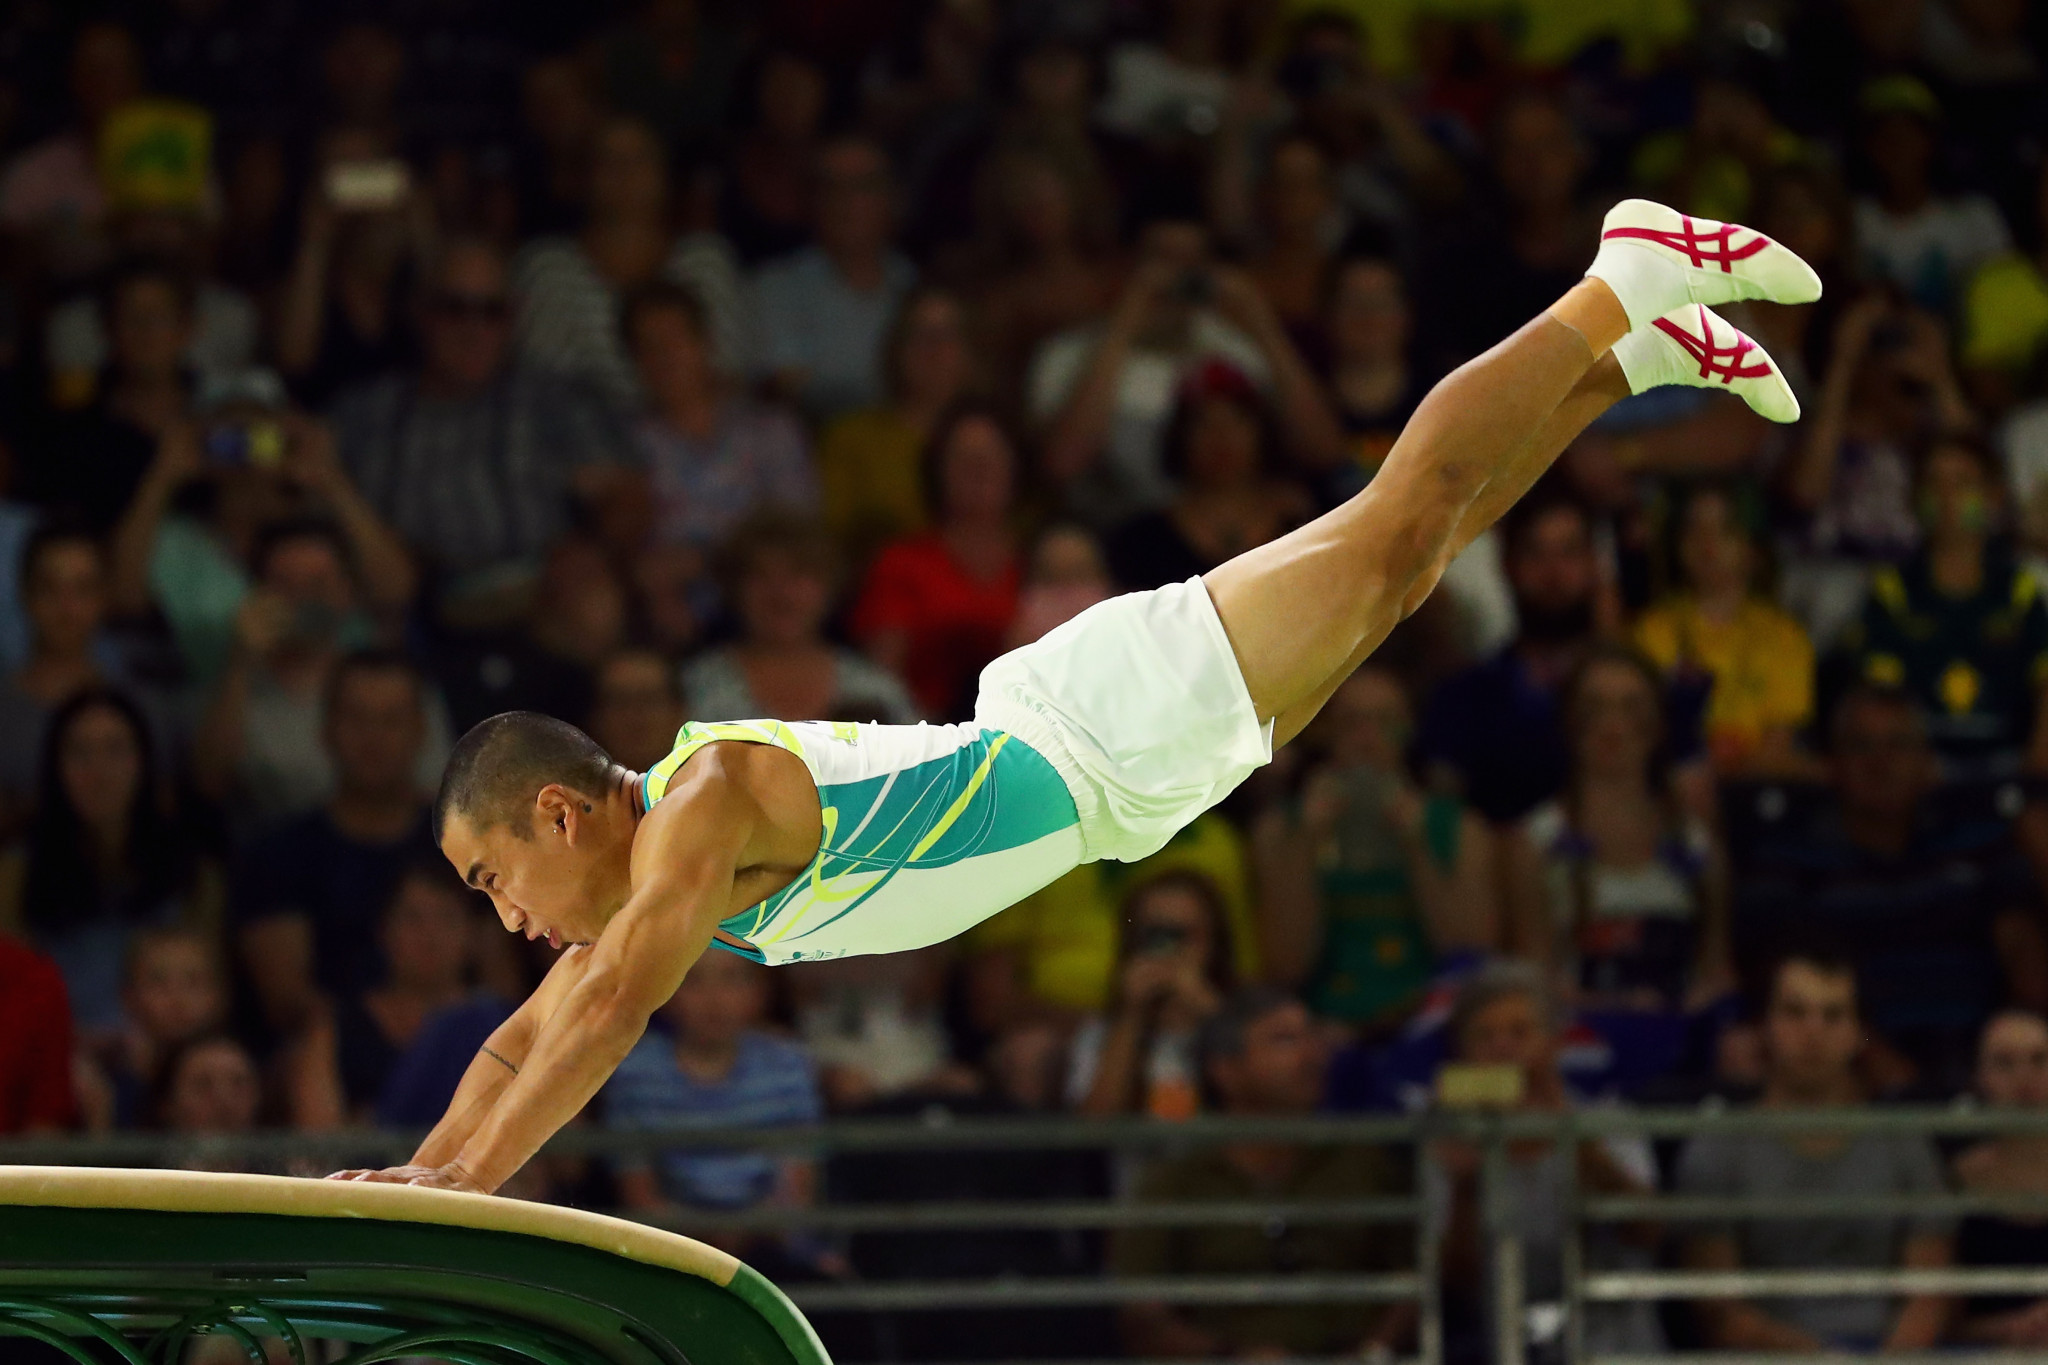 Christopher Remkes claimed Australia's first artistic gymnastics gold medal with victory in the vault final ©Getty Images